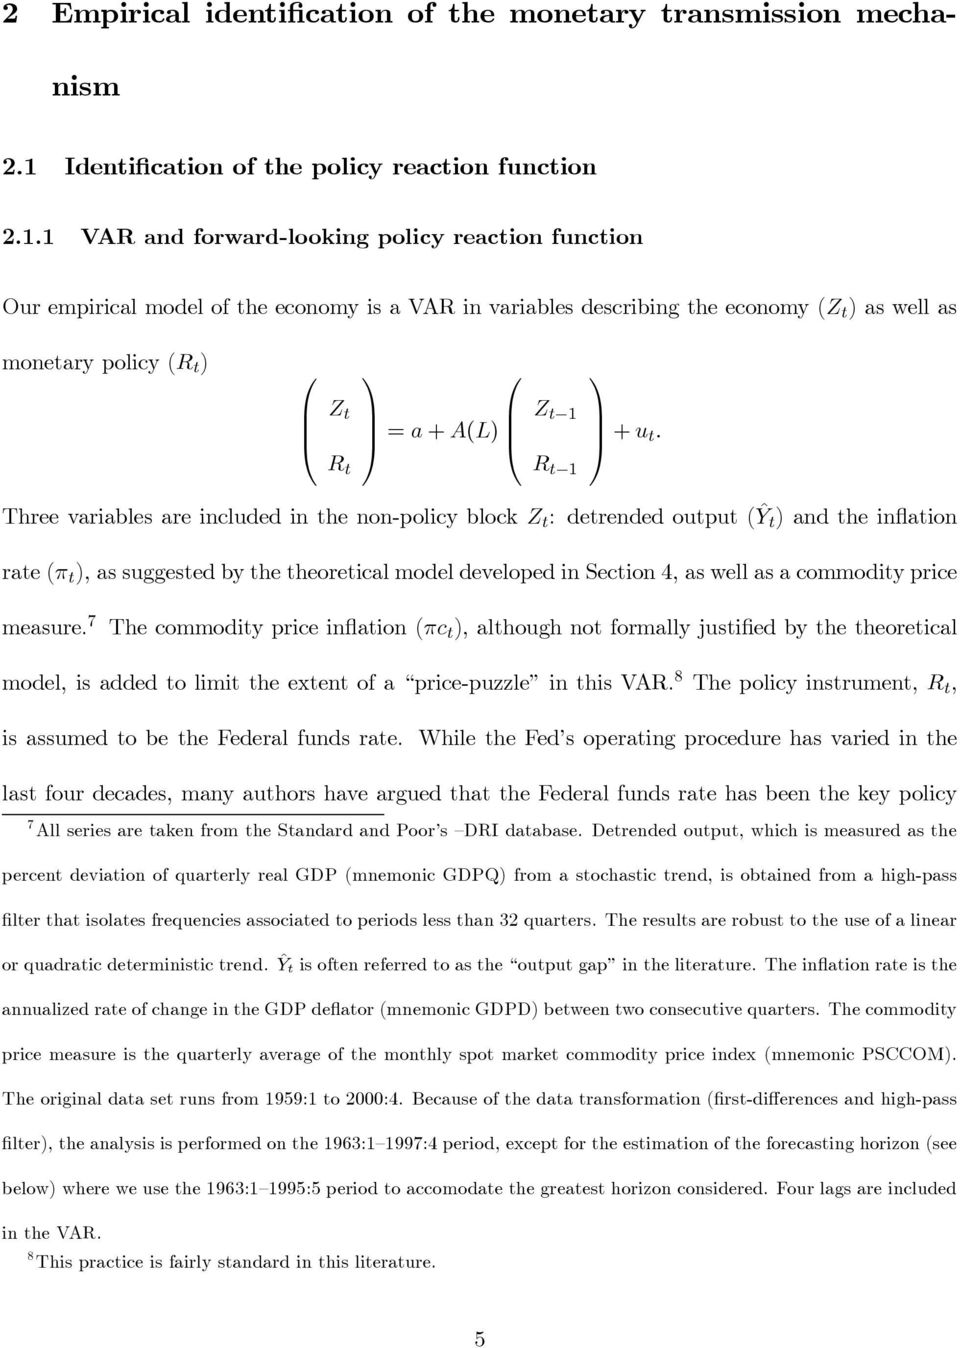 1 VAR and forward-looking policy reaction function Our empirical model of the economy is a VAR in variables describing the economy (Z t )aswellas monetary policy (R t ) 0 B @ Z t R t 1 0 C A = a +